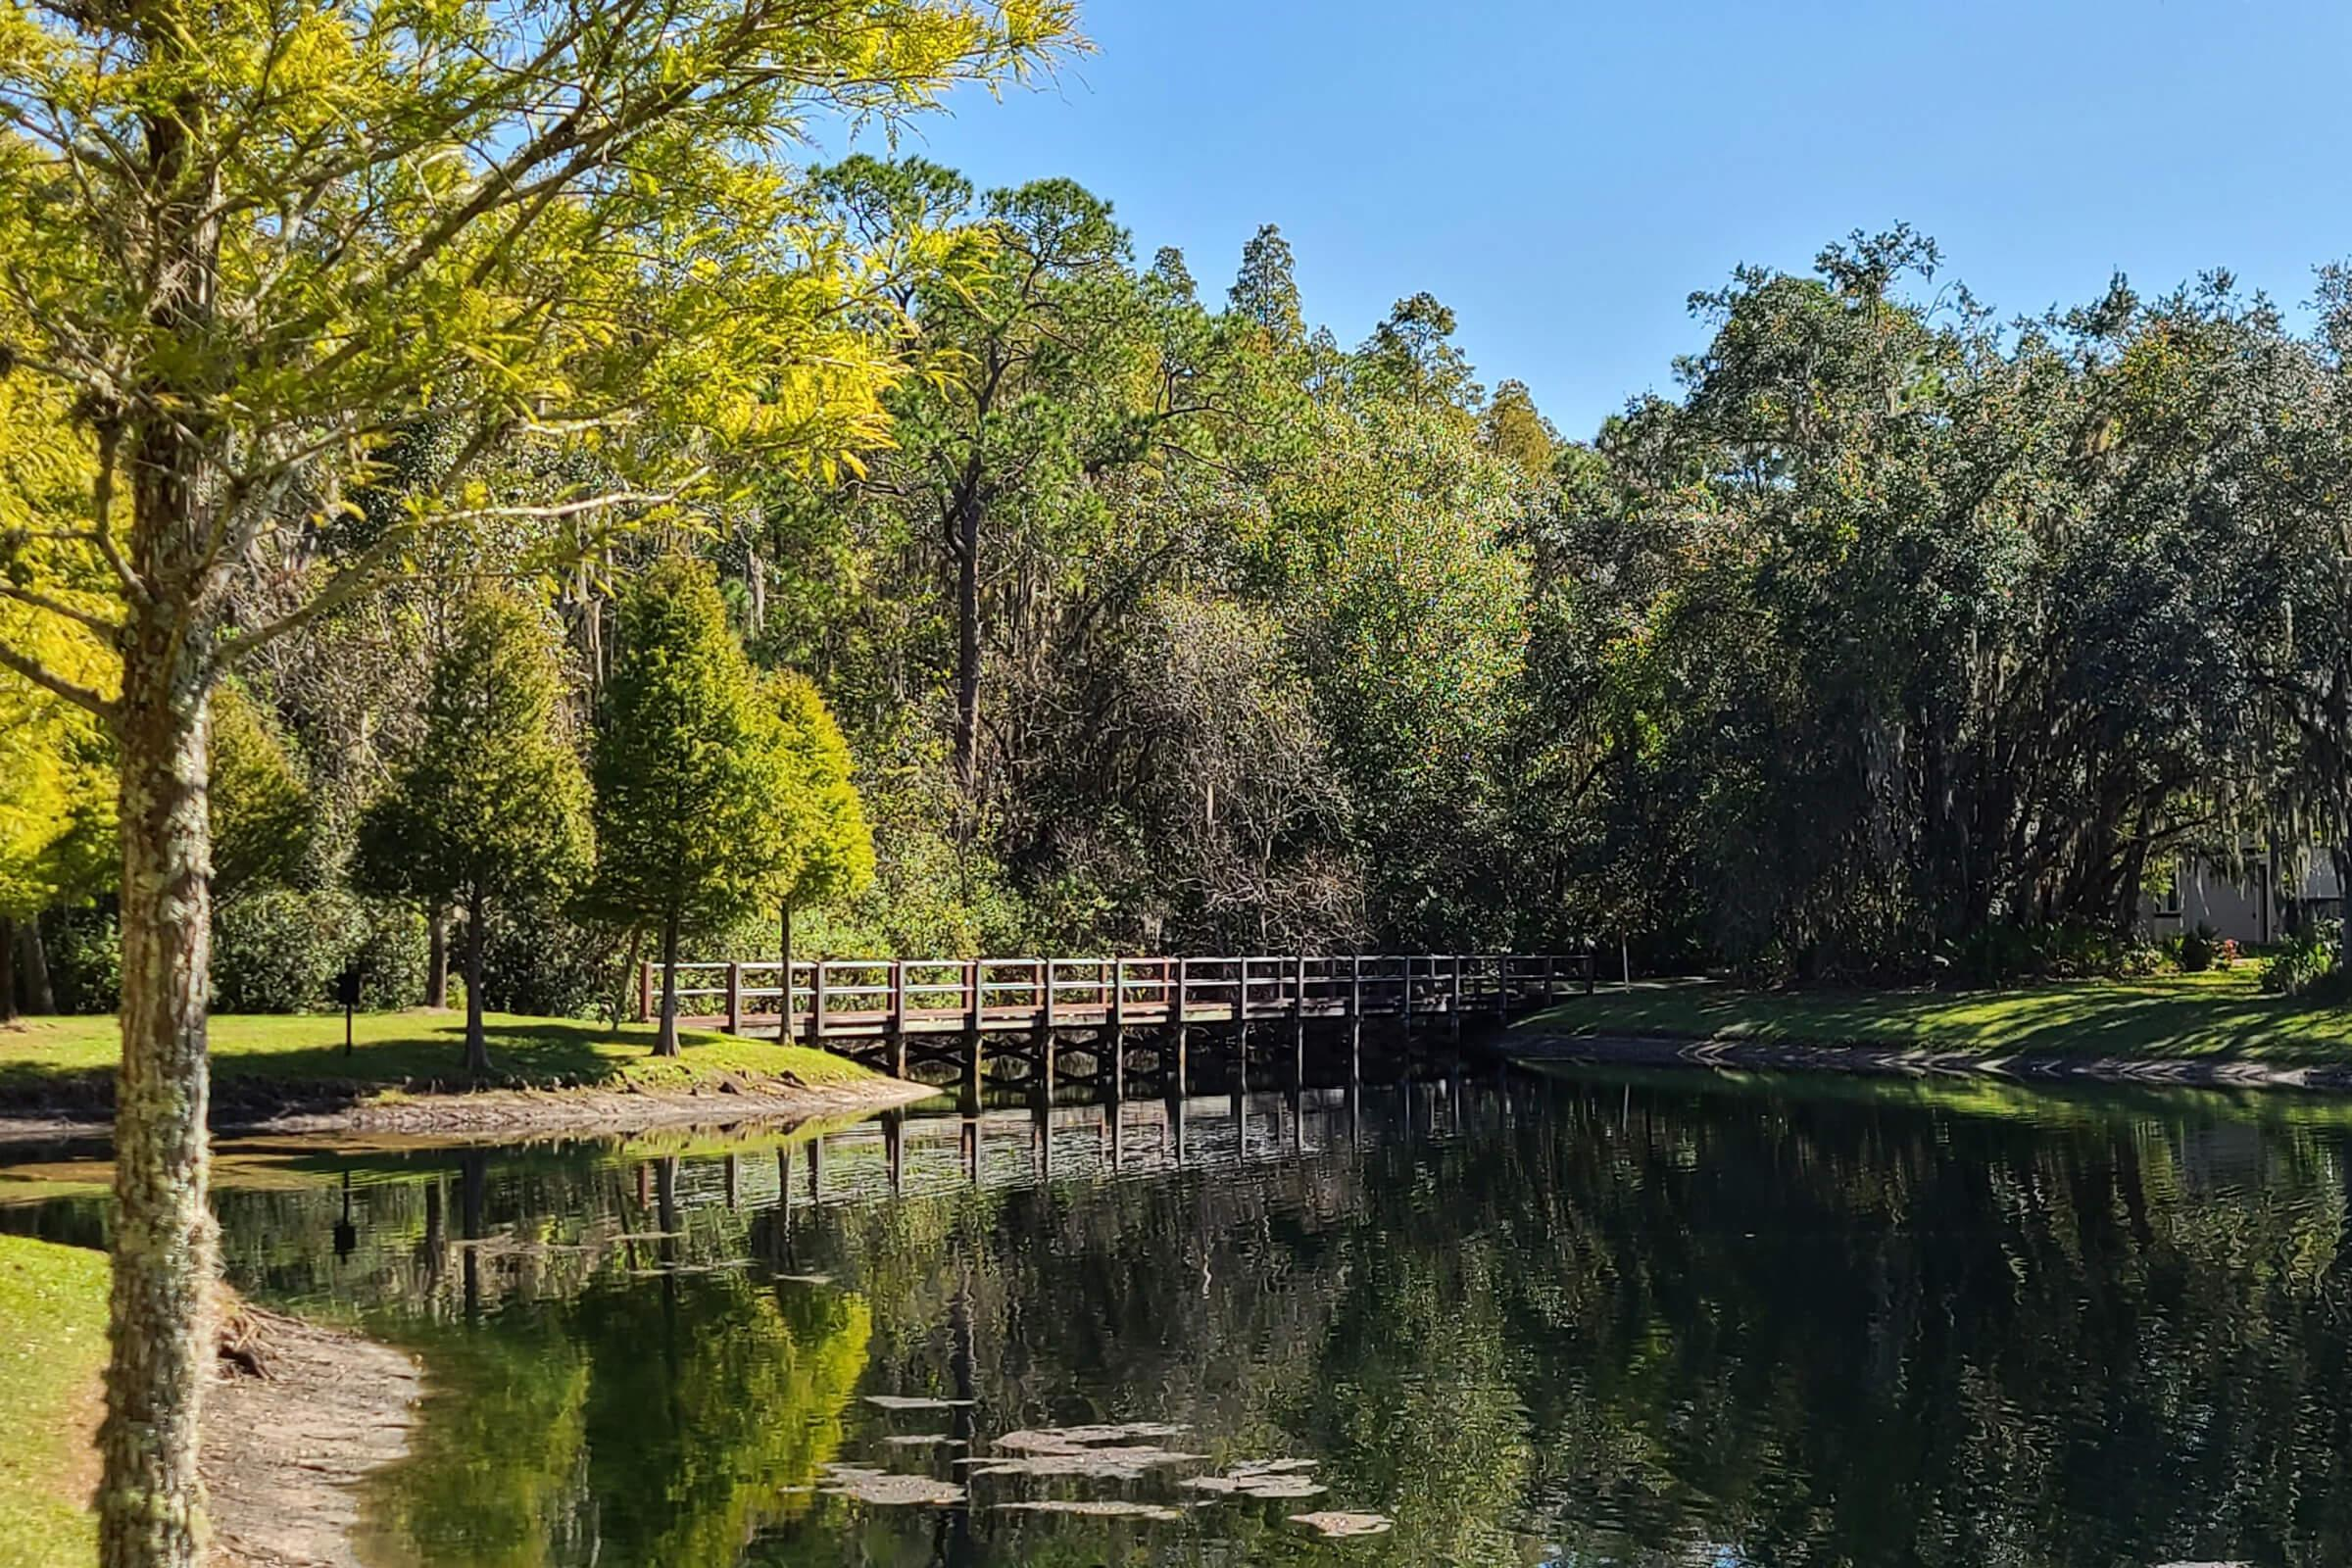 a bridge over a body of water surrounded by trees